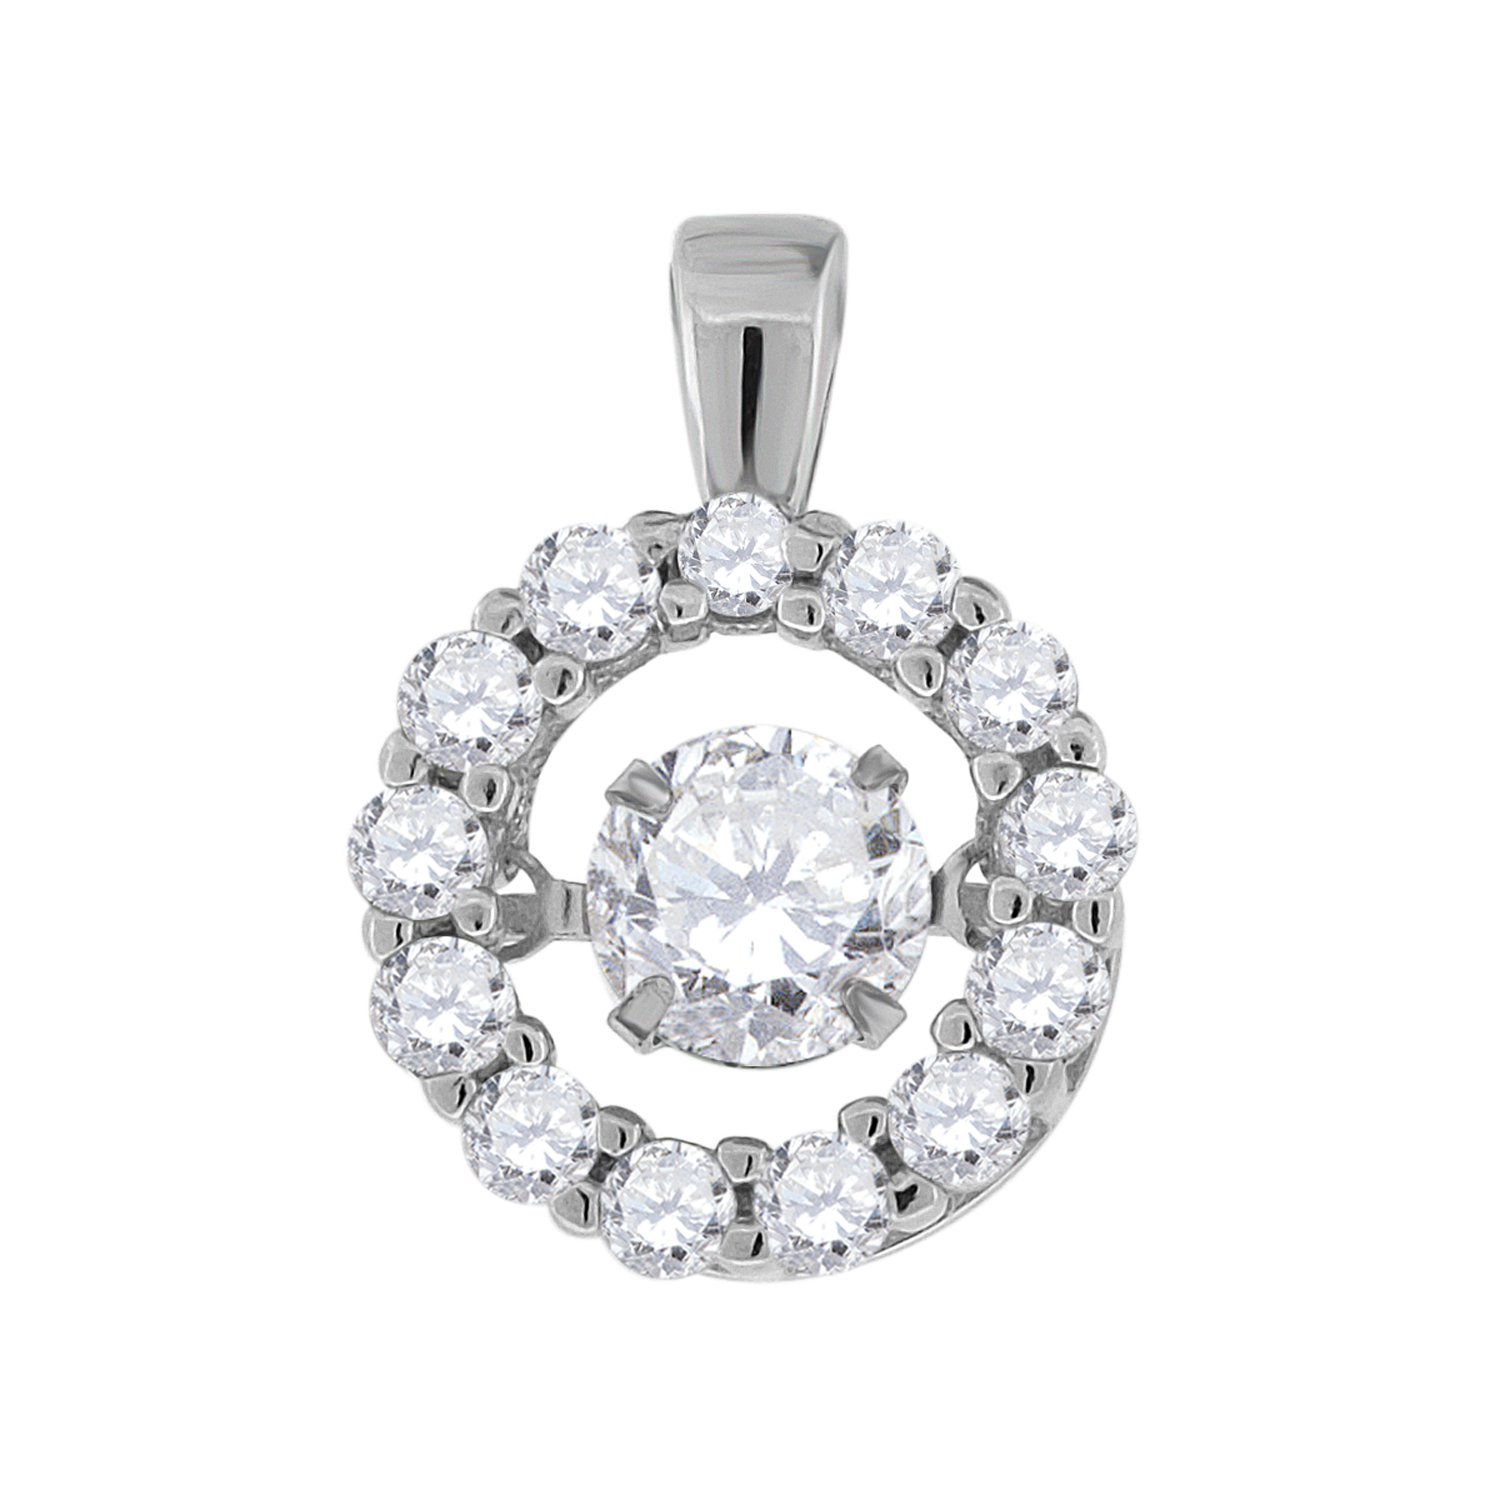 Jewels By Lux Sterling Silver Mens Cubic Zirconia CZ Round Stud Earrings Set With The Highest Quality Cubic Zirconia.